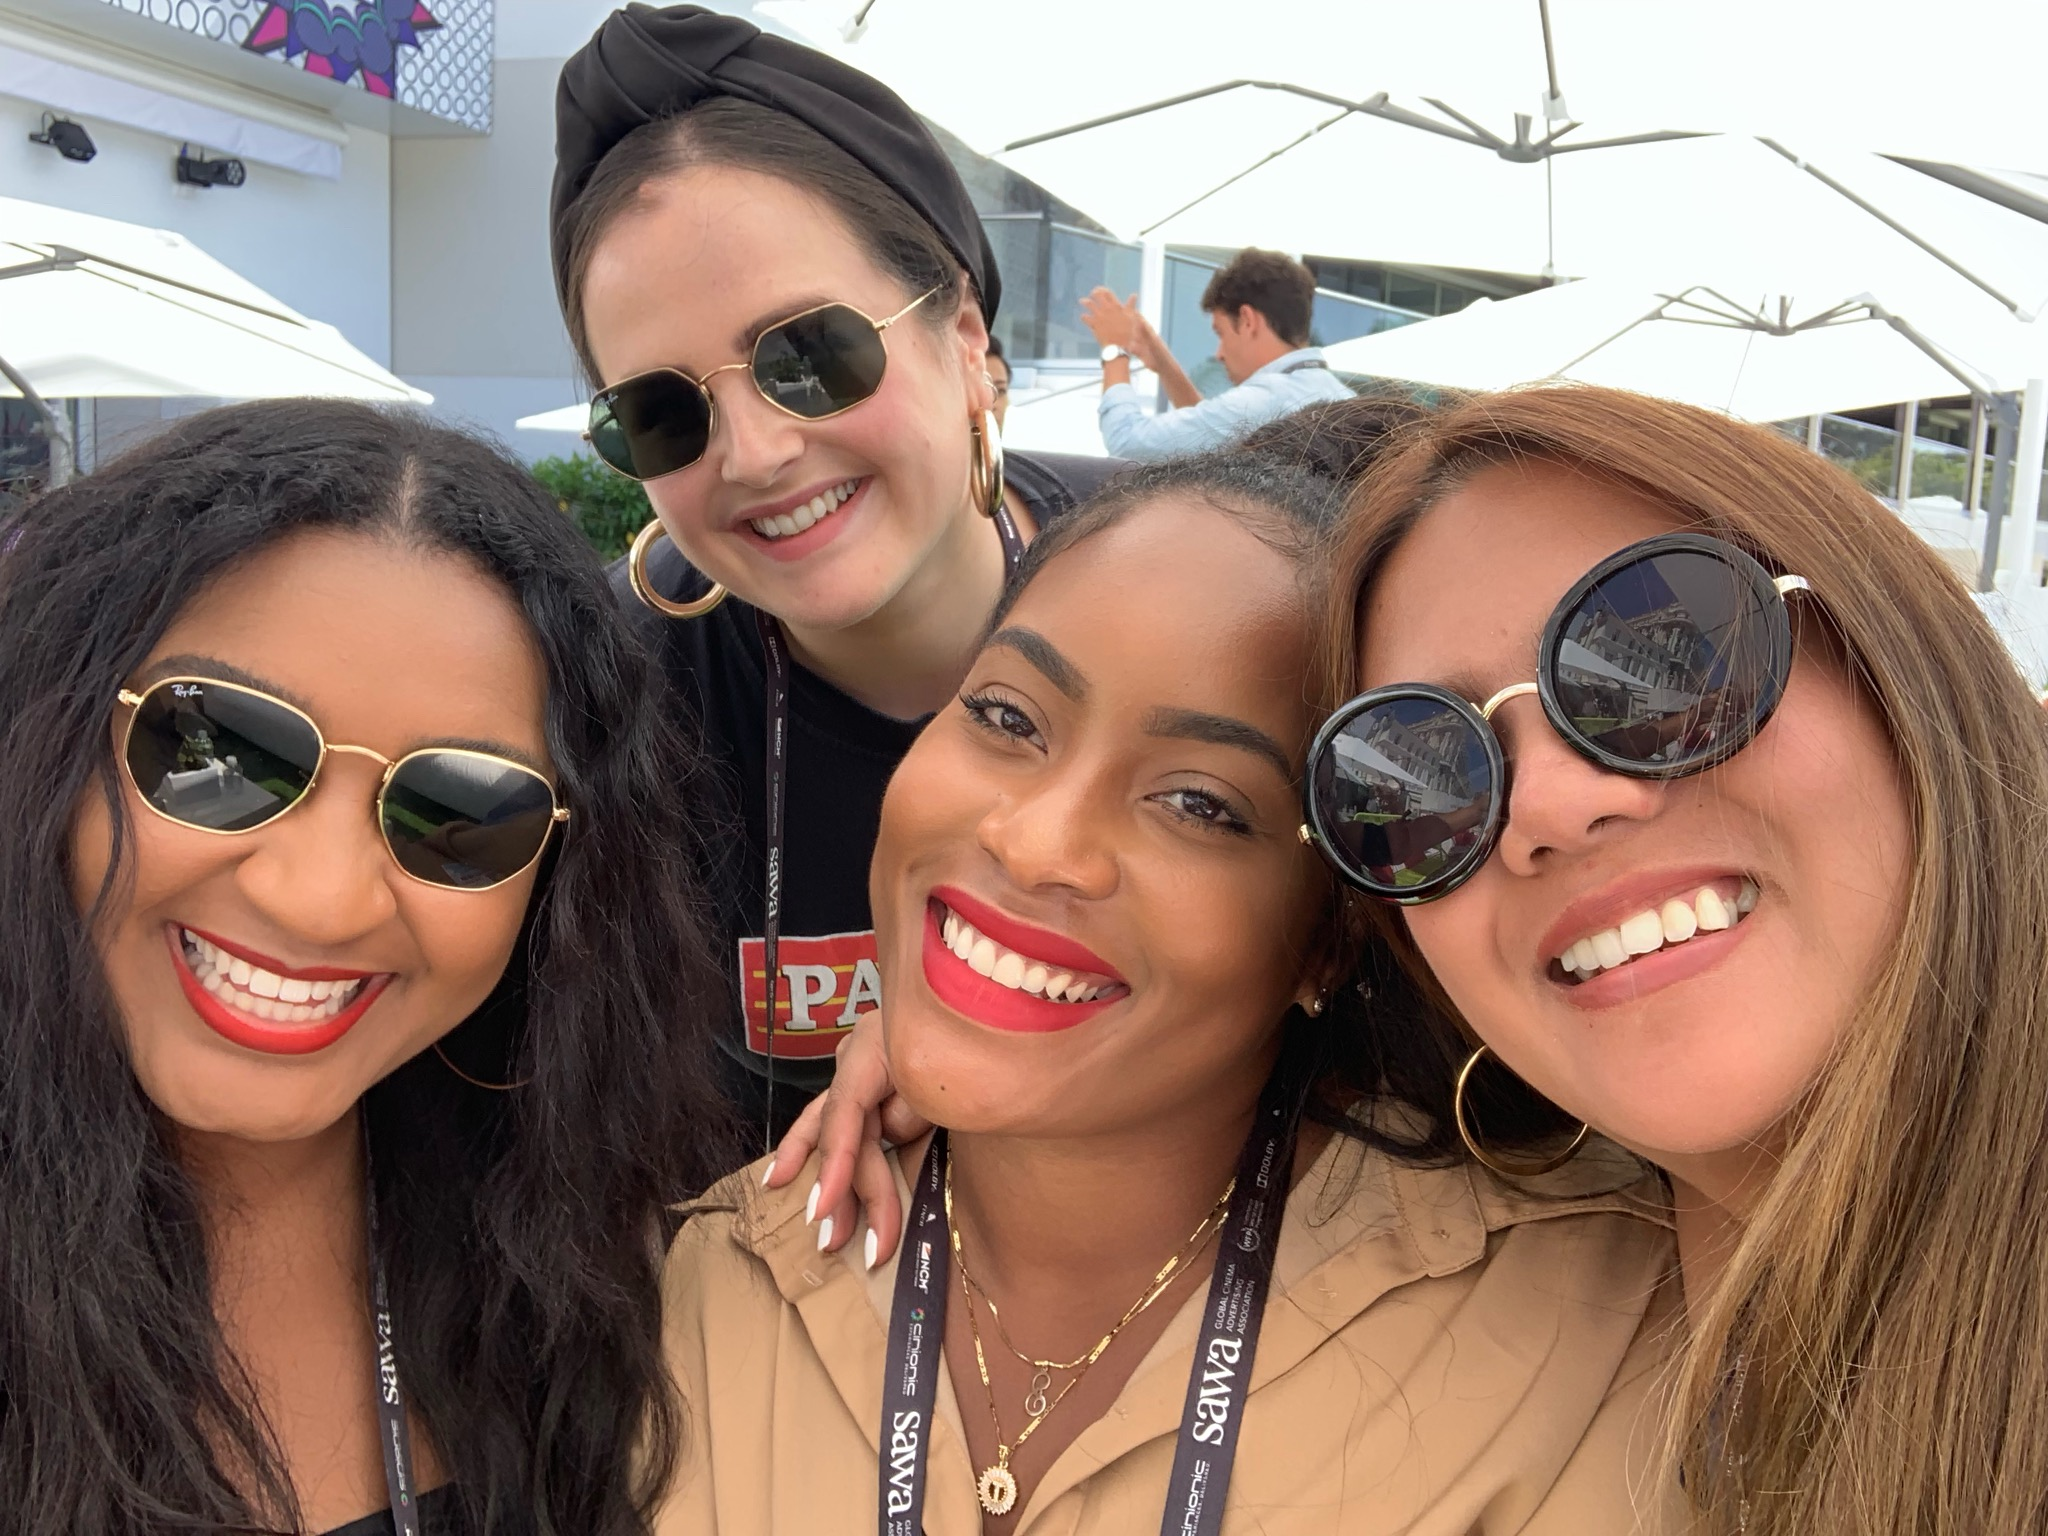 Cannes Lions was life-changing by jasmine diane